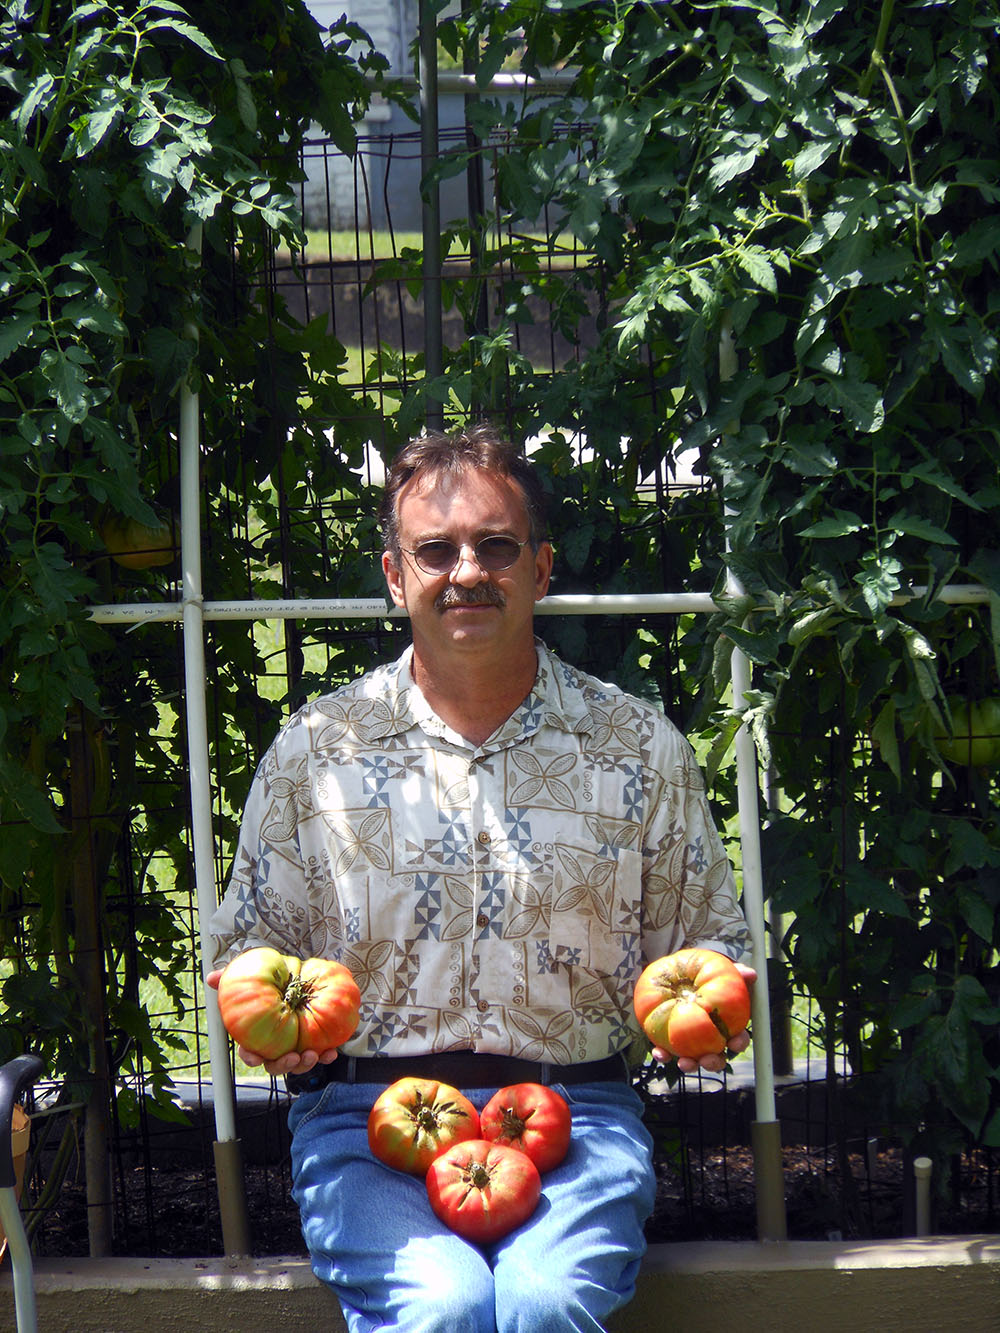 07-10-2015 Me and 5 HUGE Tomatoes 01